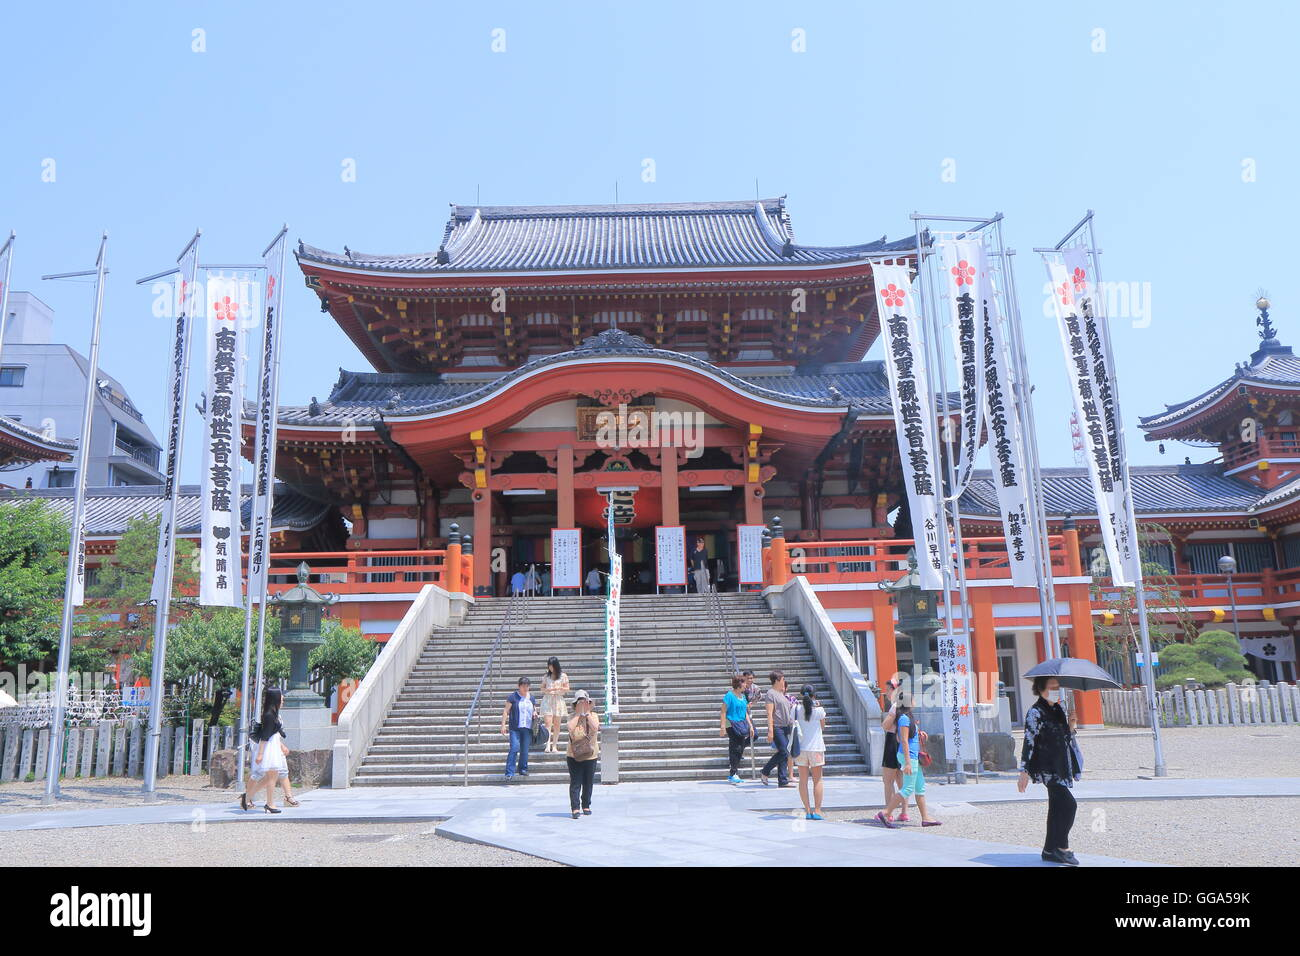 People visit Osu Kannon temple in Nagoya Japan. - Stock Image